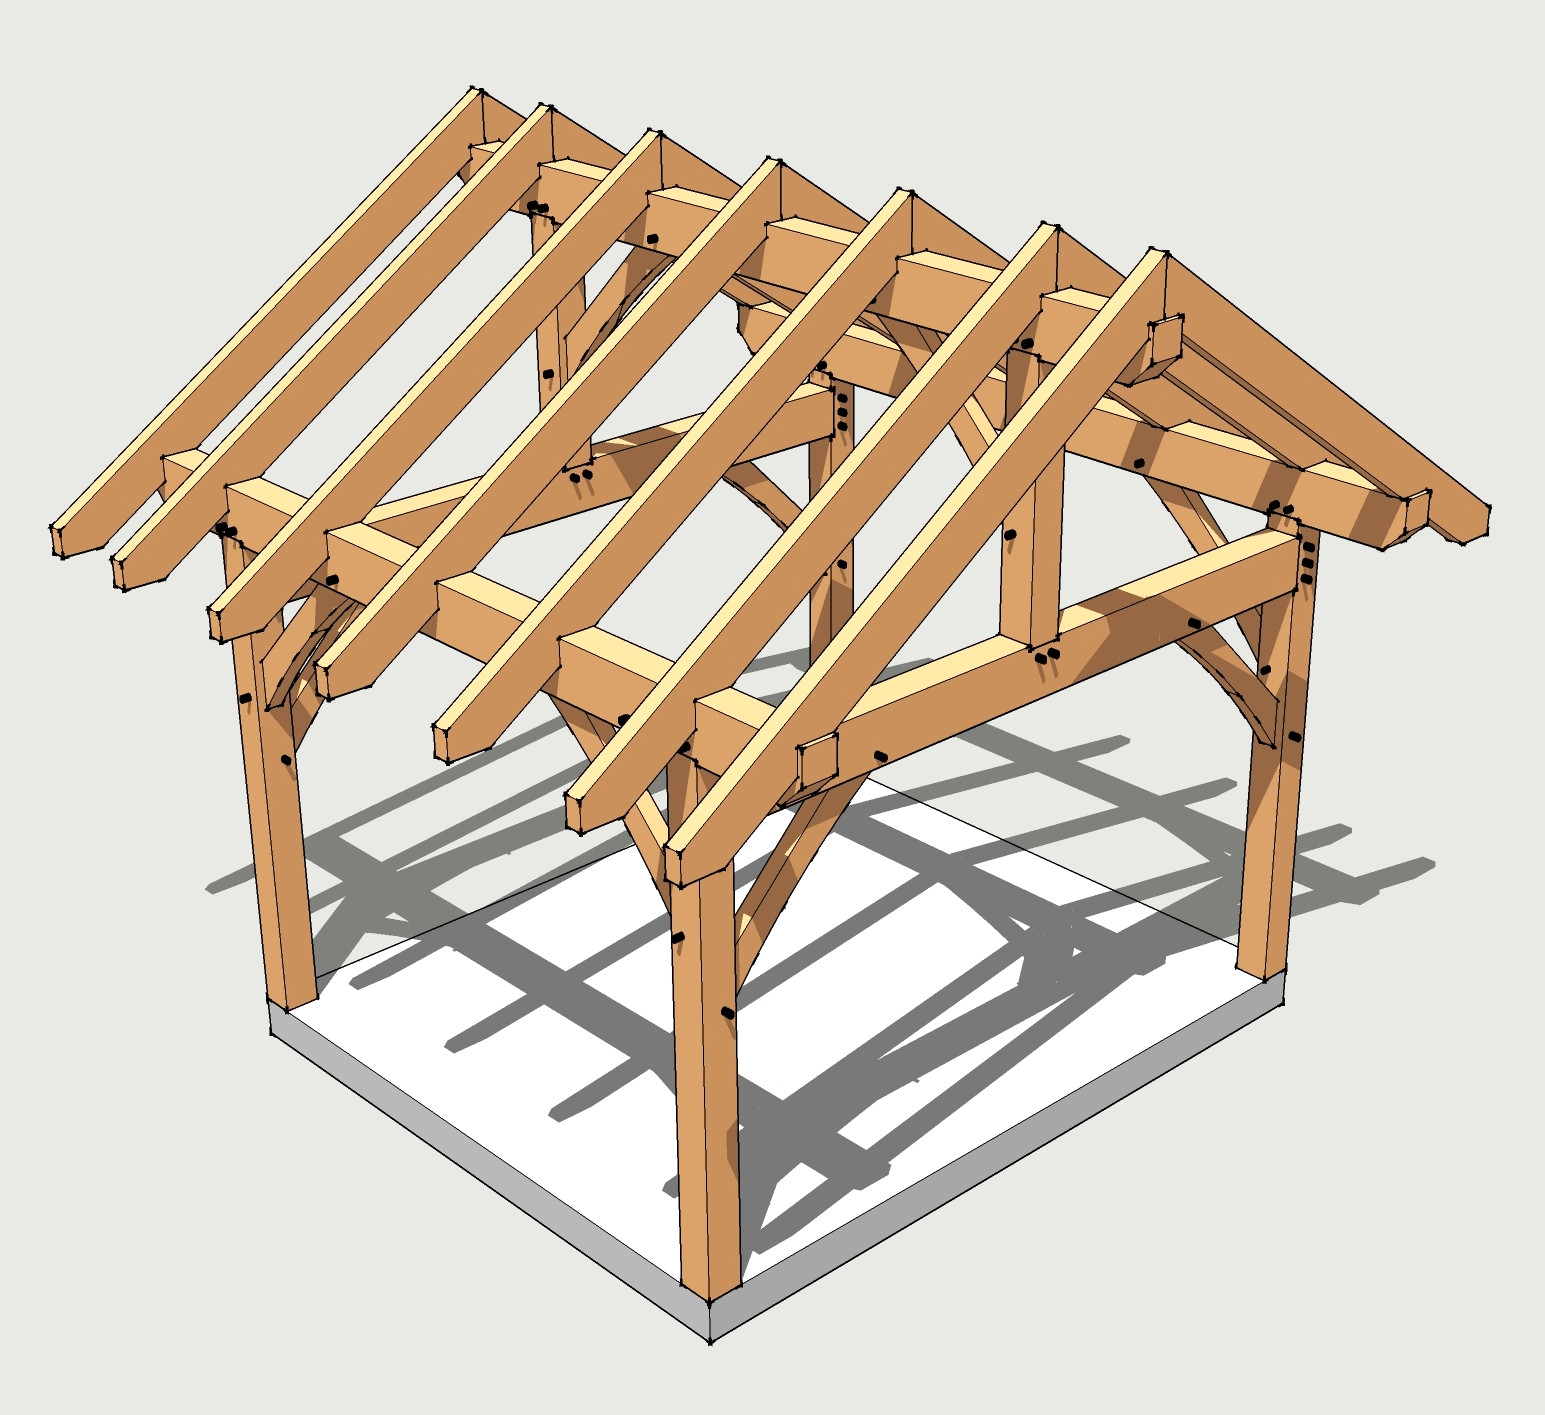 Best ideas about DIY Timber Frame Plans . Save or Pin 12x14 Timber Frame Plan Timber Frame HQ Now.